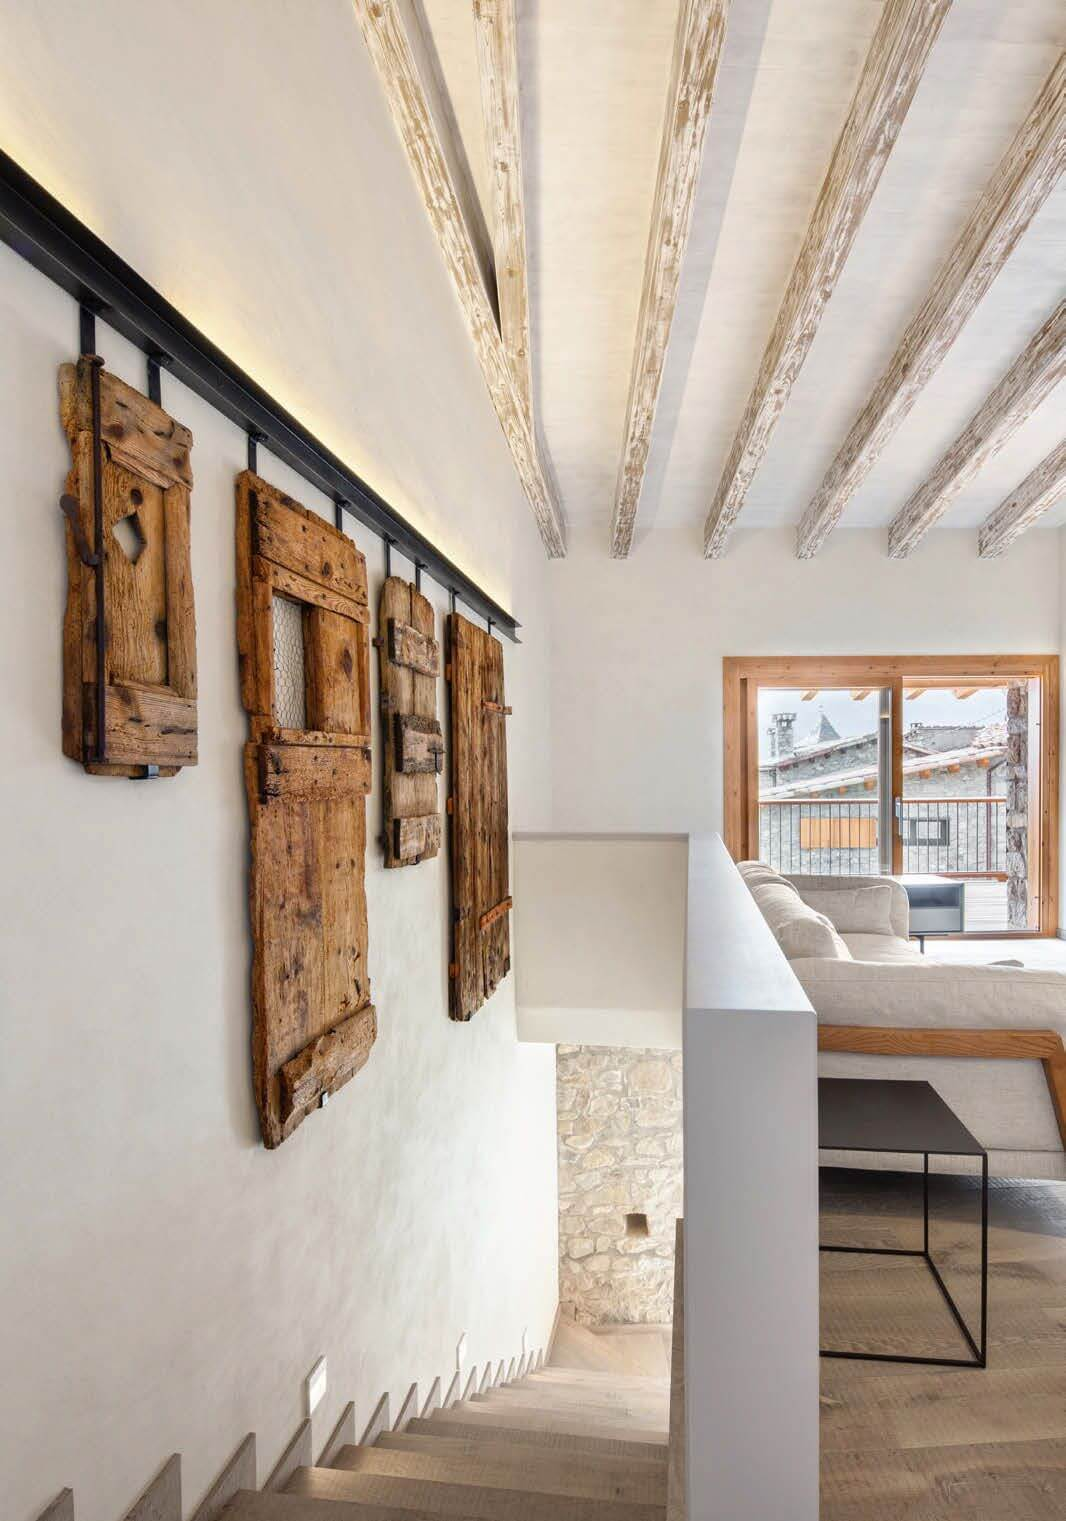 Wood interior wall decoration Refurbishment in La Cerdanya